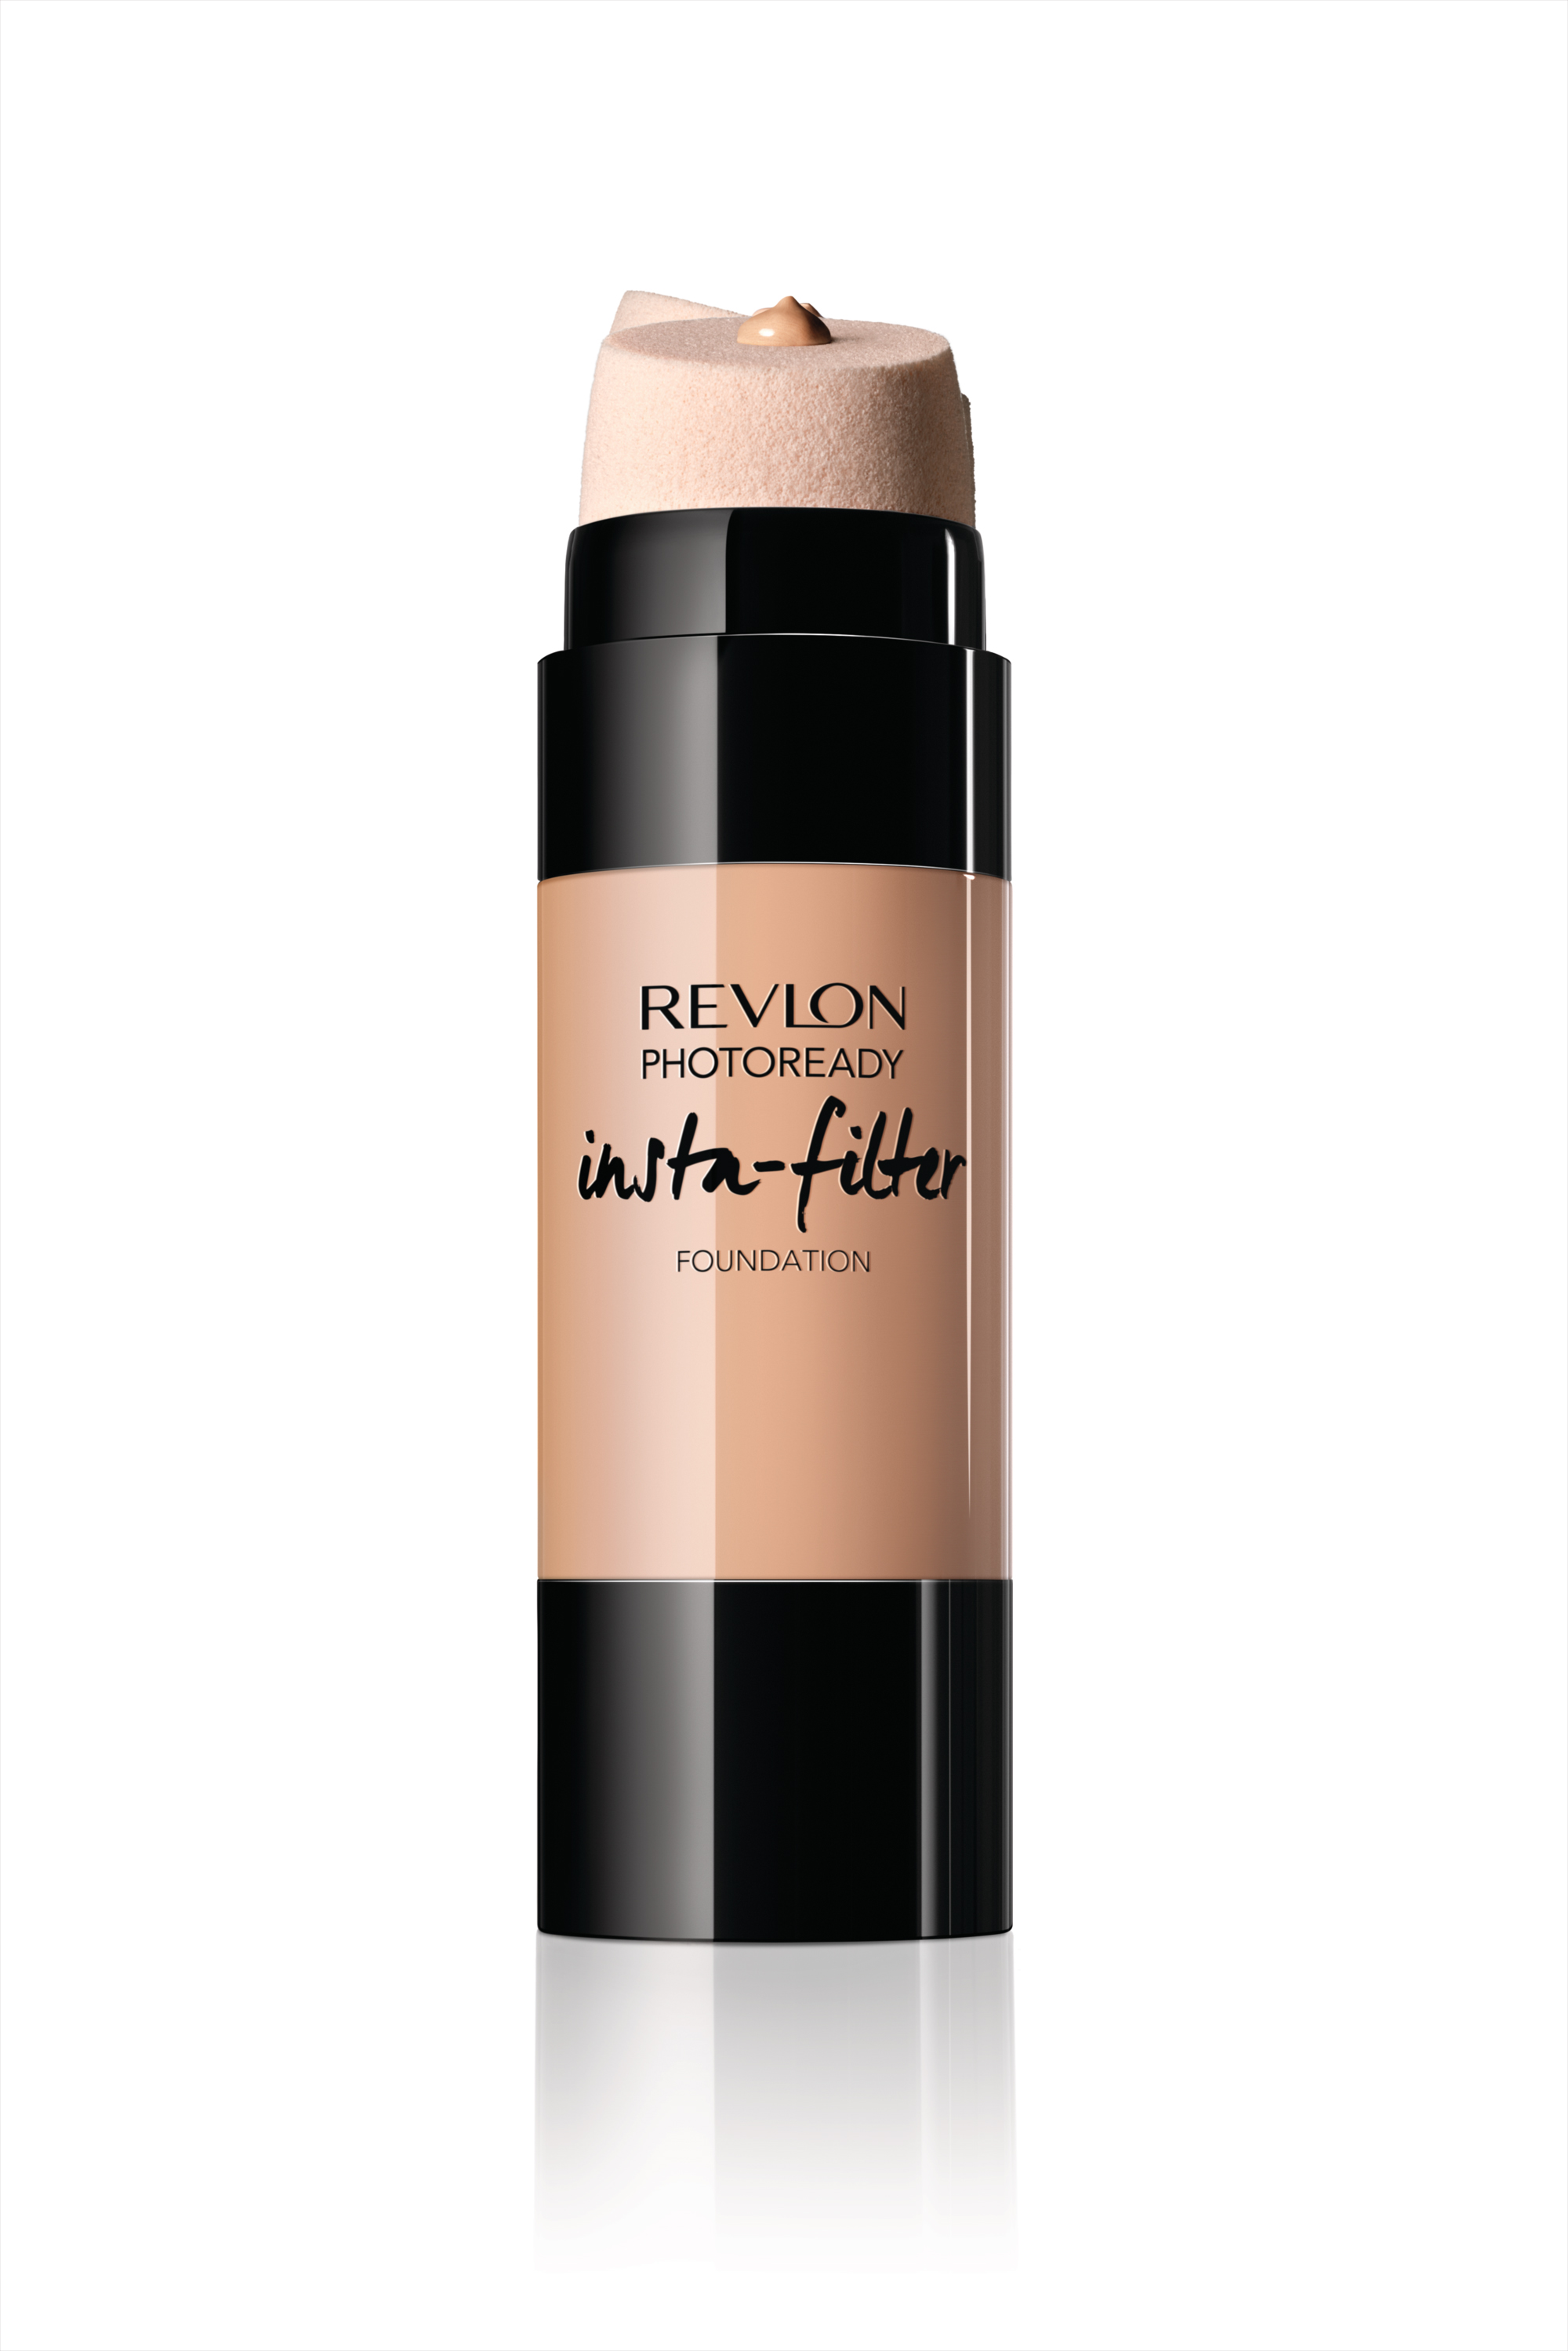 Revlon PhotoReady Insta-Filter Foundation in black and beige bottle